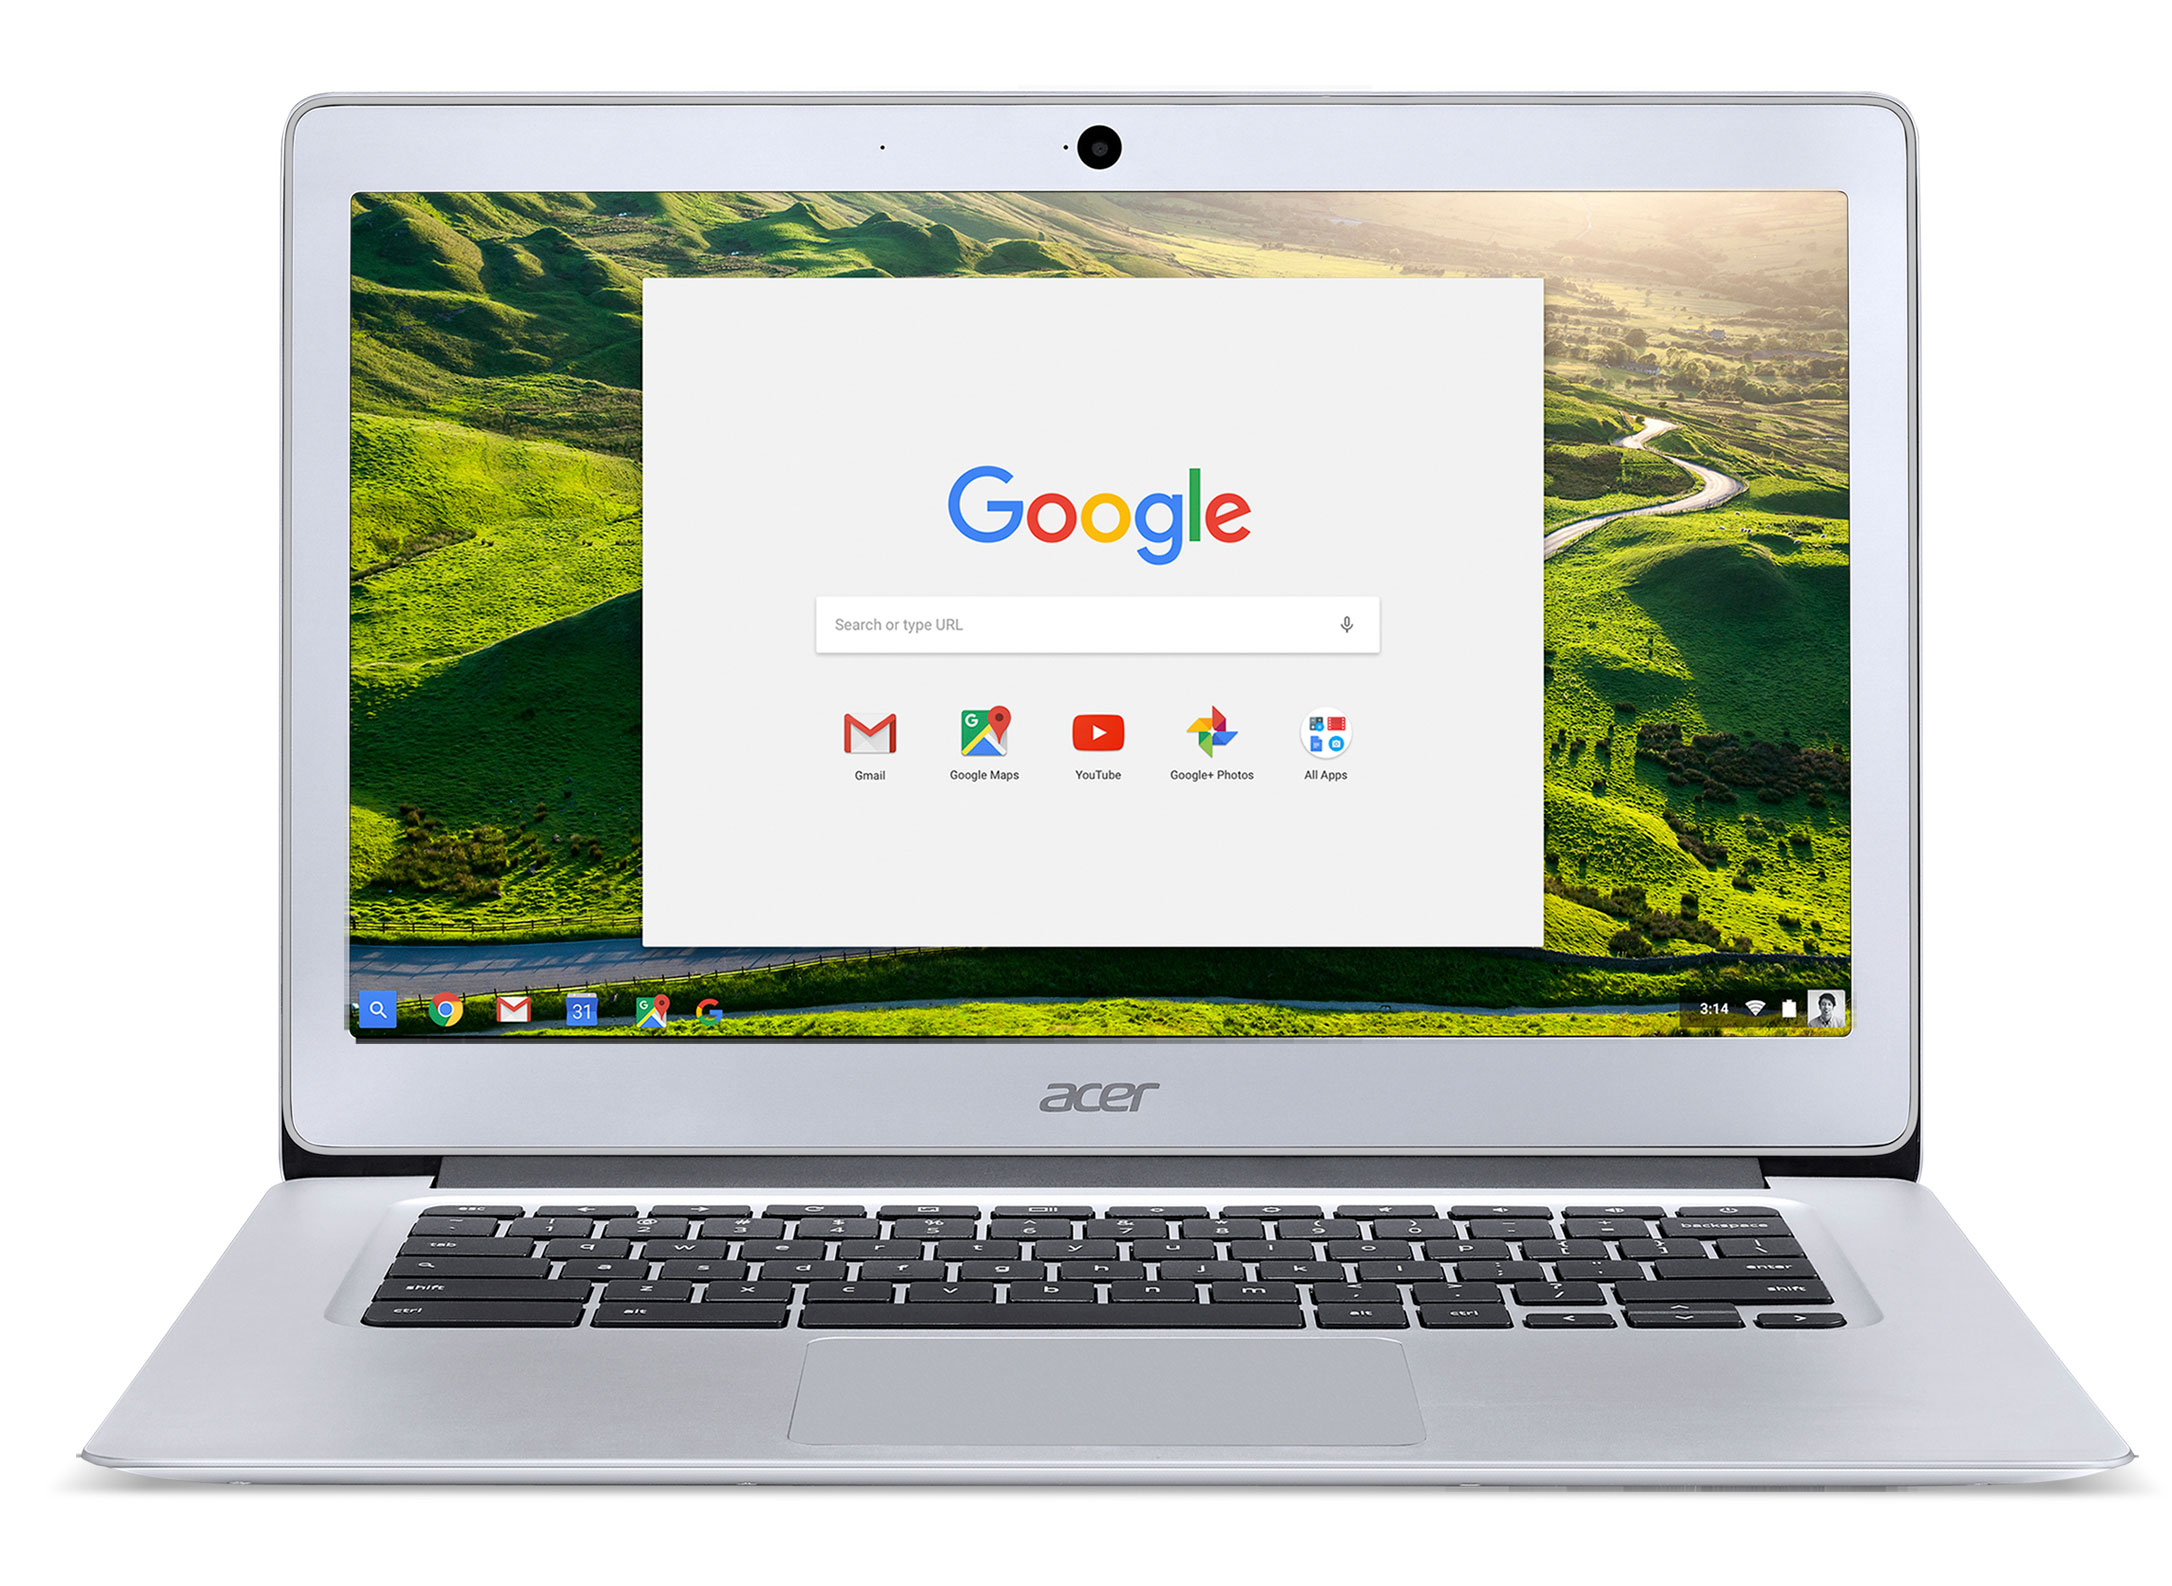 Acer CB3-431 Chromebook 14 Intel Celeron Processor 2GB RAM 16GB eMMC SSD 14 Chromebook